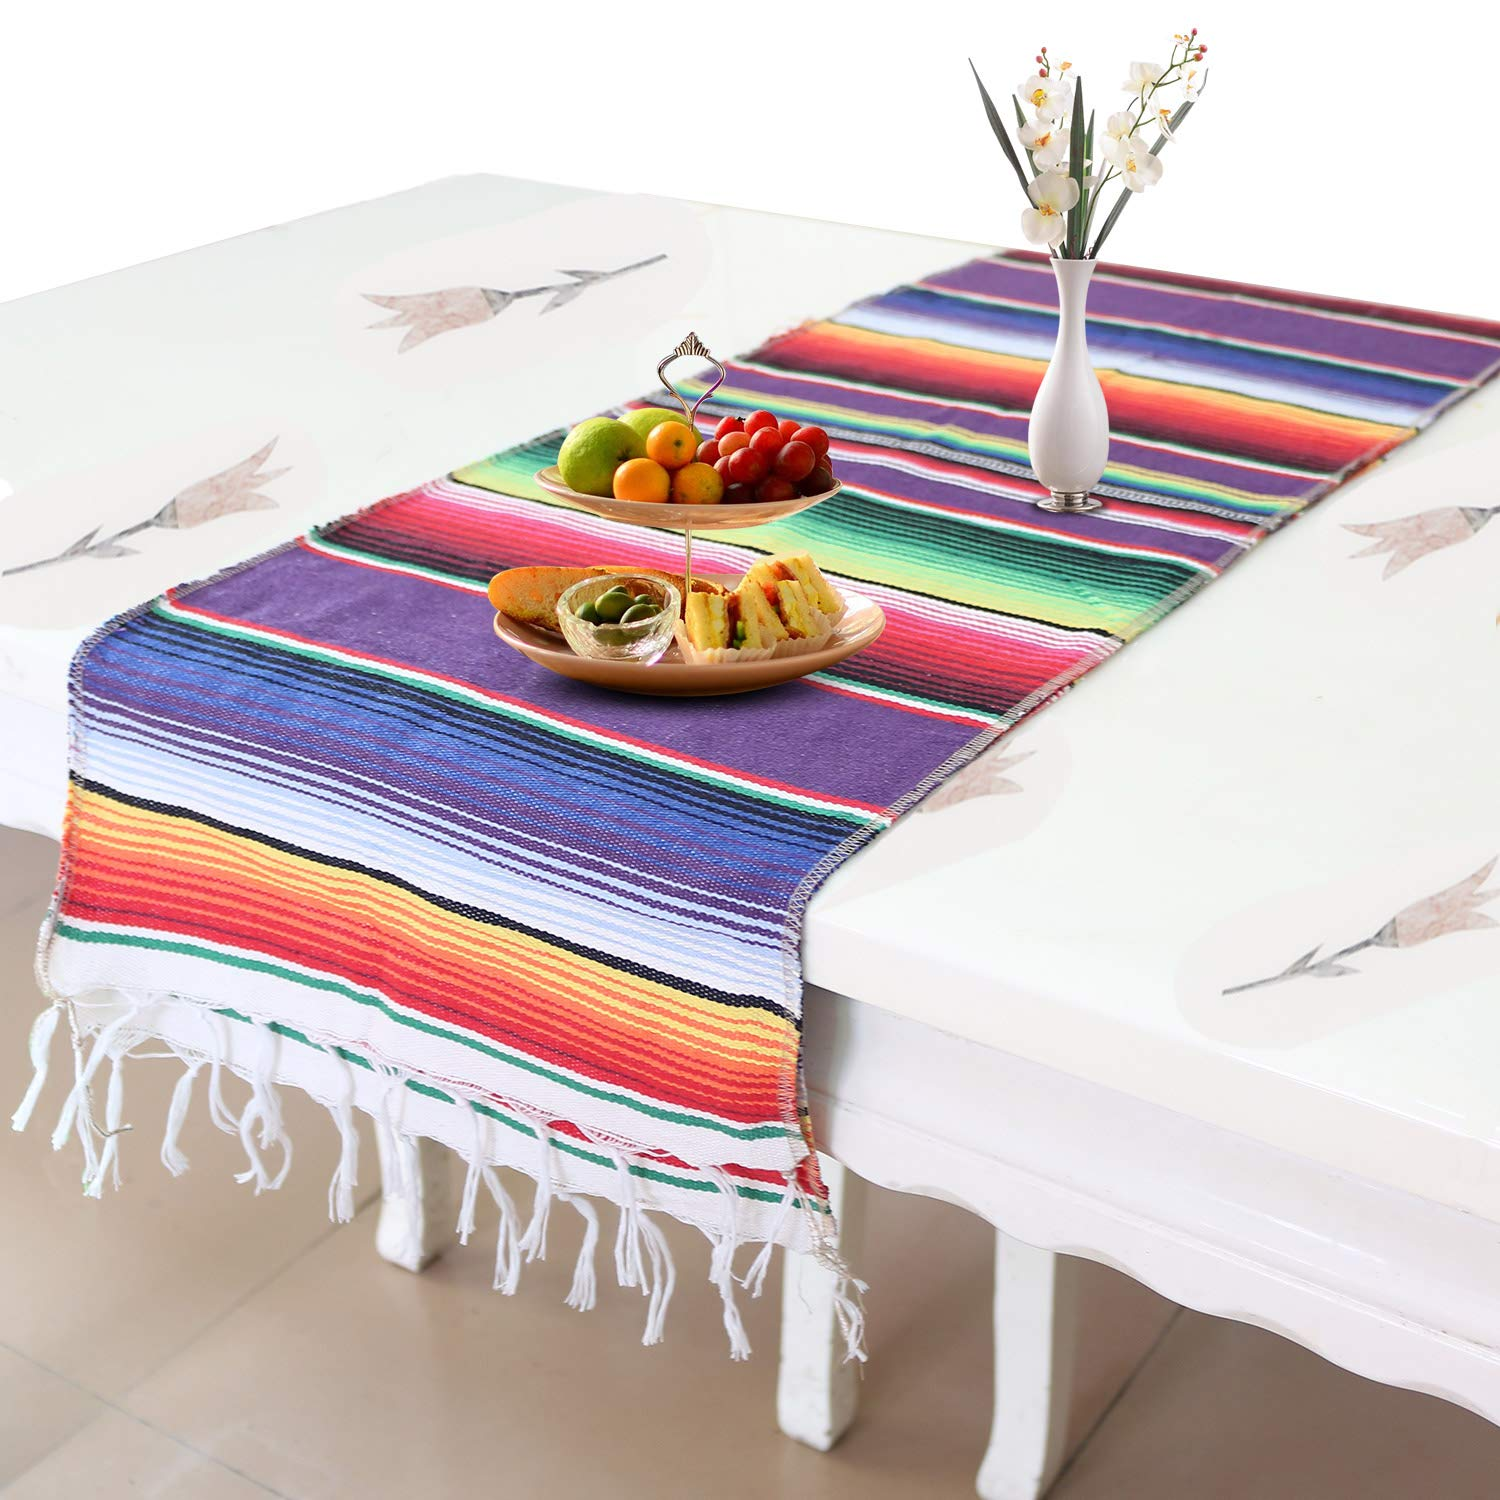 Auranso Mexican Table Runner 14 x 84 inch Cotton Striped Weave Serape Table Runner Rainbow Mexican Blanket for Fiesta Party Decorations